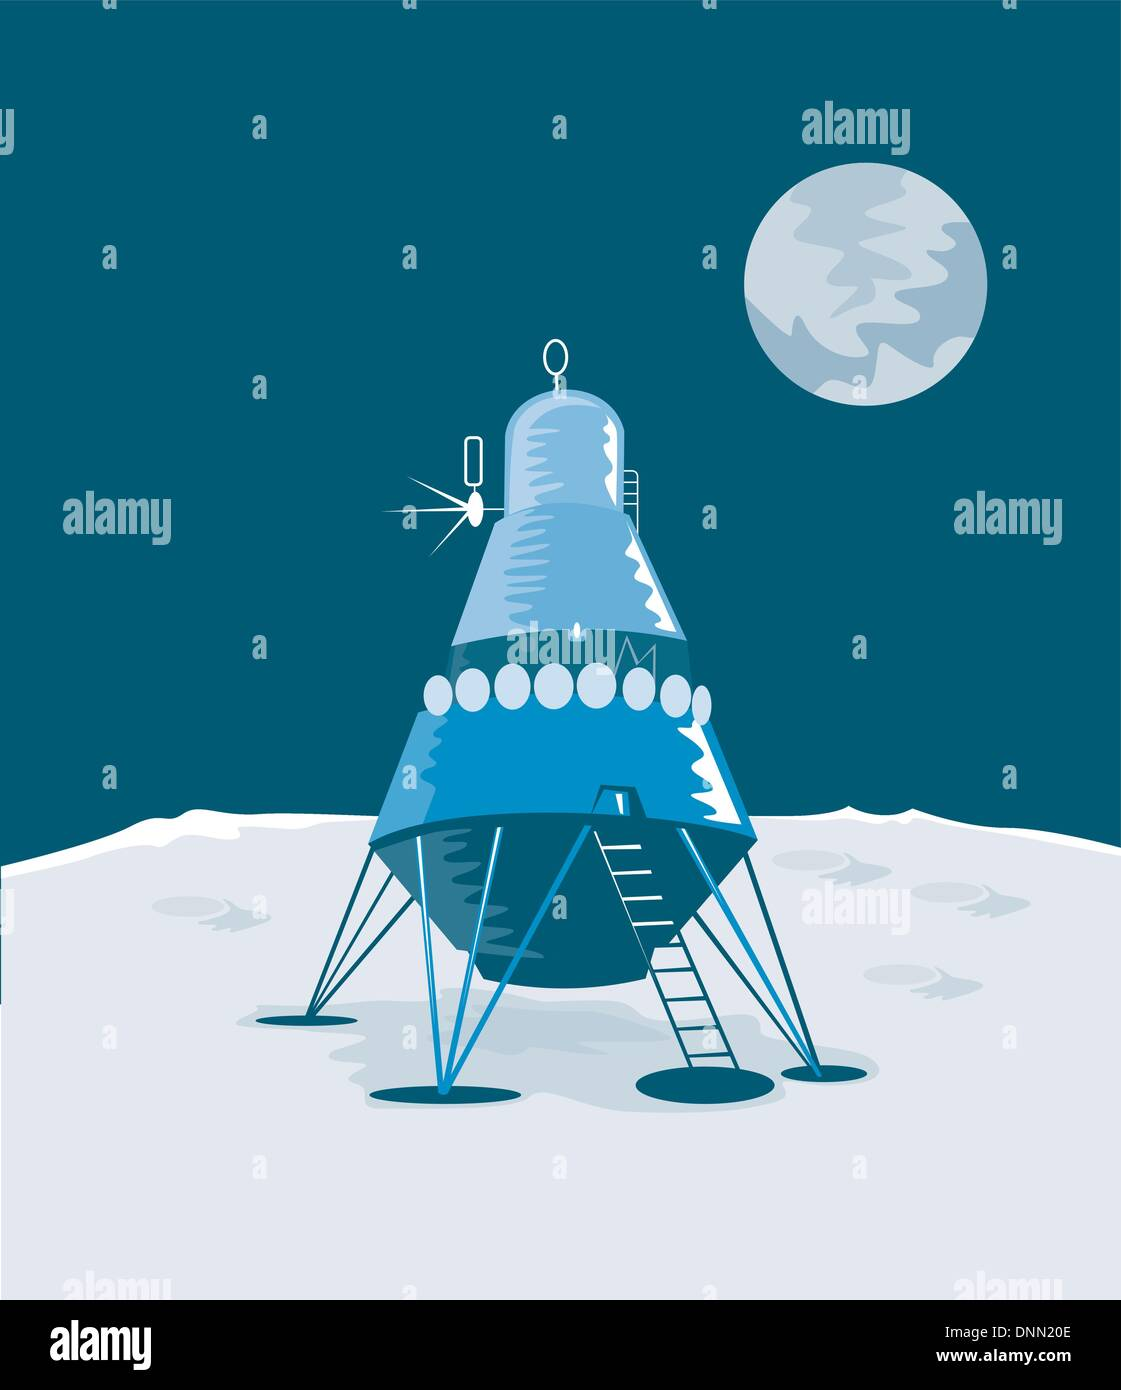 Illustration of lunar module landing on the moon isolated on white background done in retro style. - Stock Vector